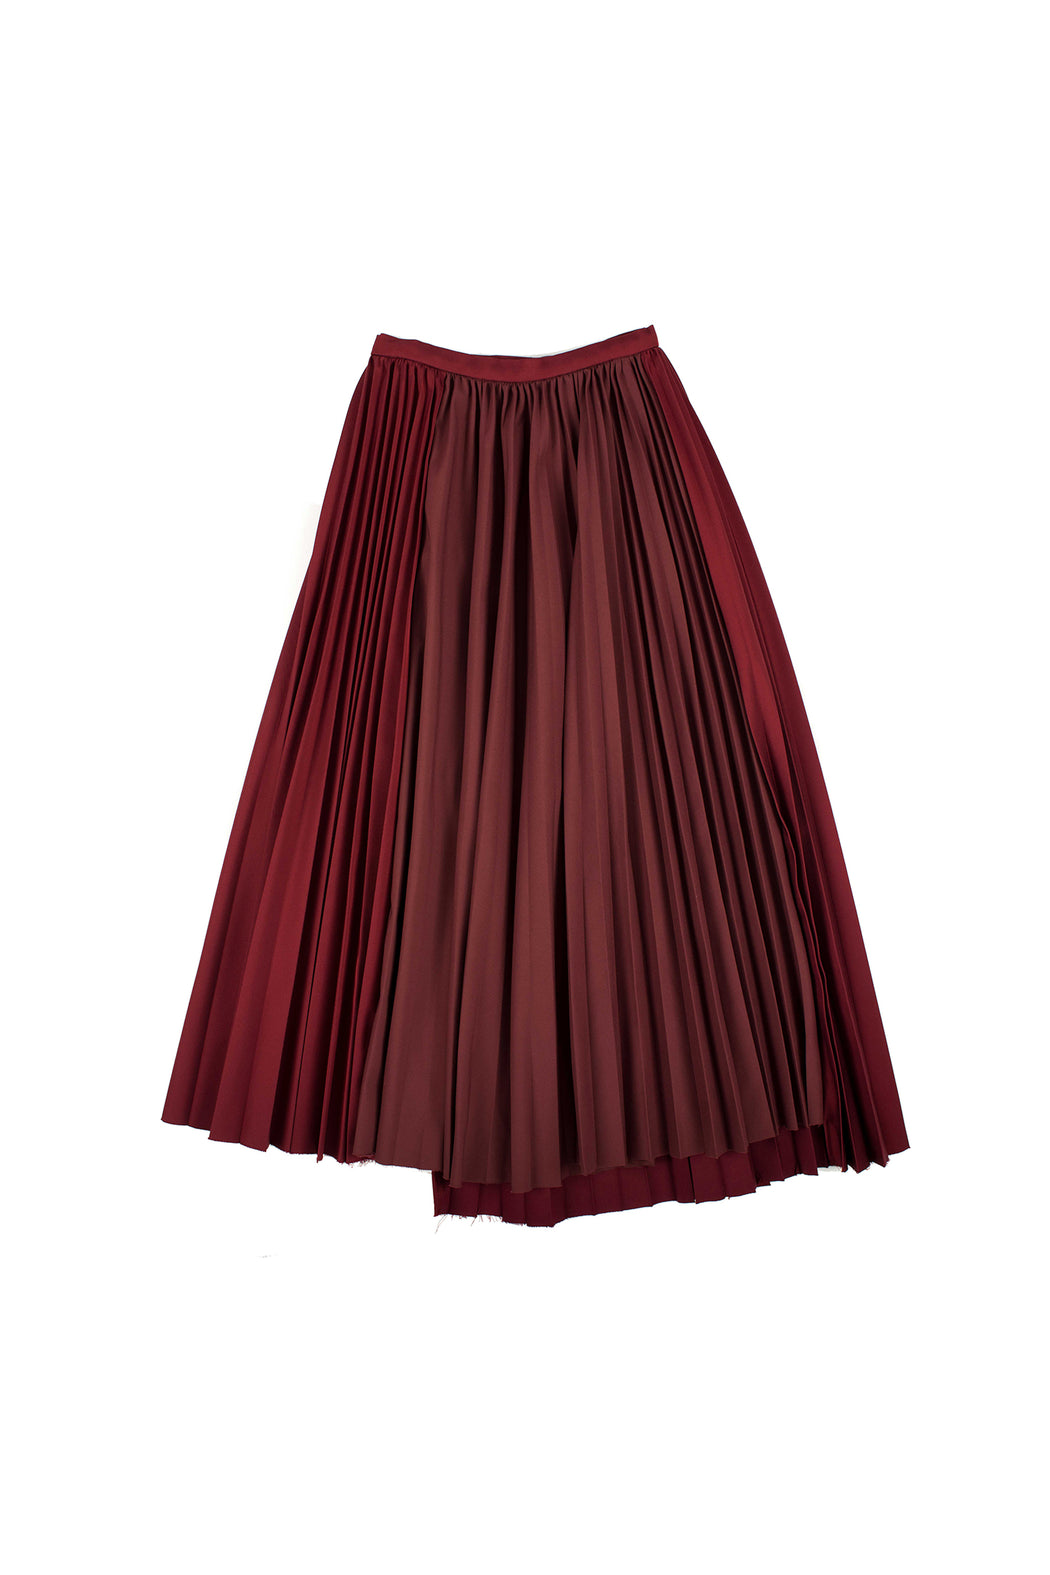 Unbalanced Hem Pleated Skirt - Burgundy